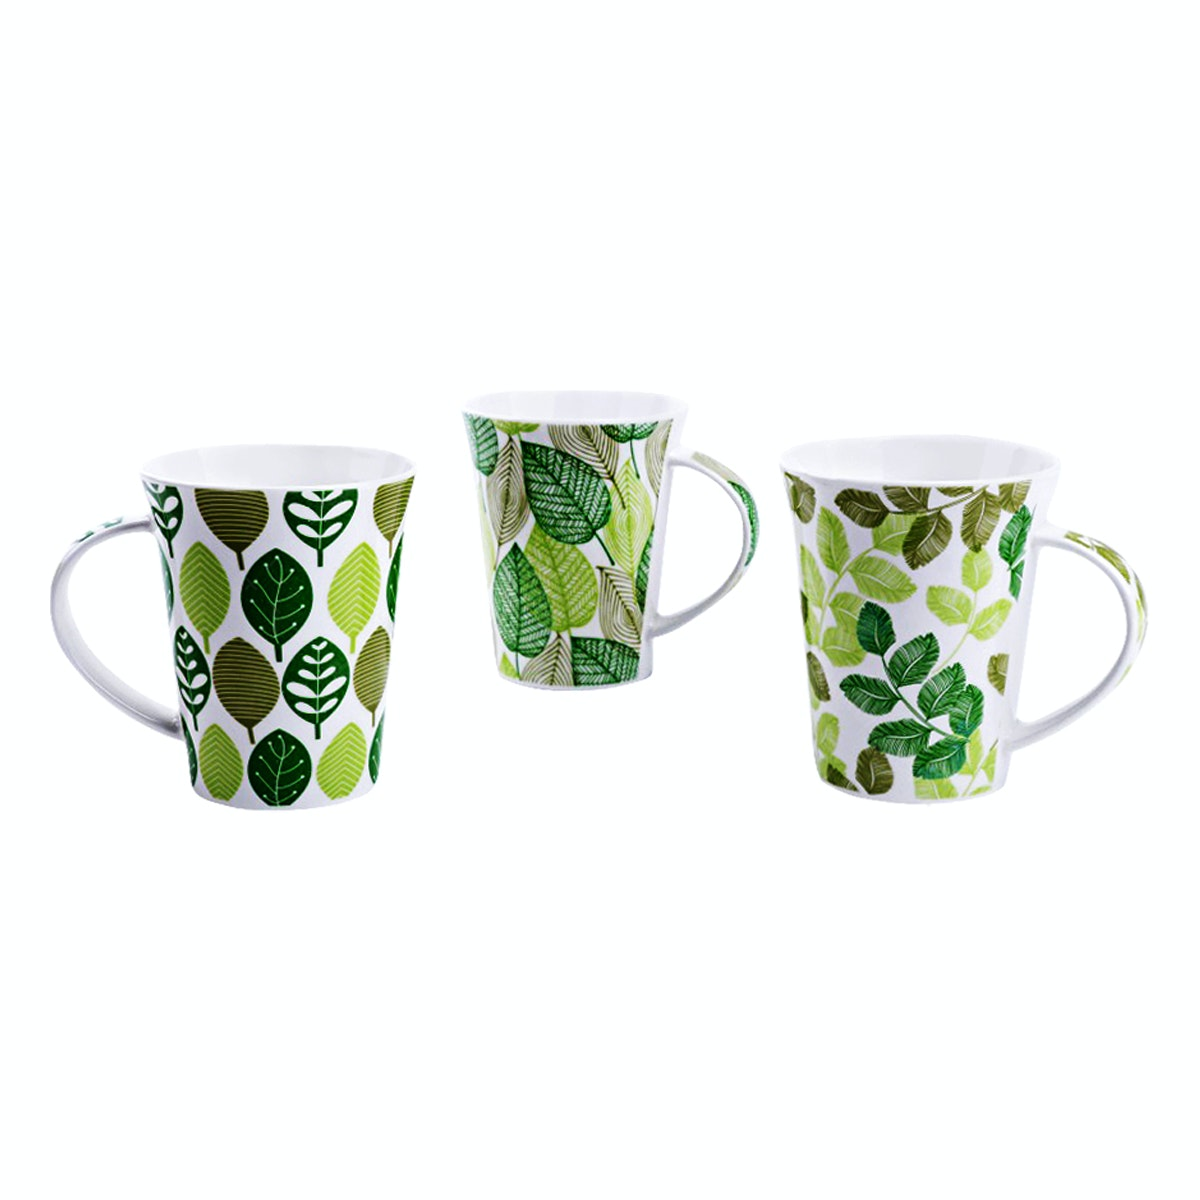 Nakami 3 Pcs New Bone Mug Set A054